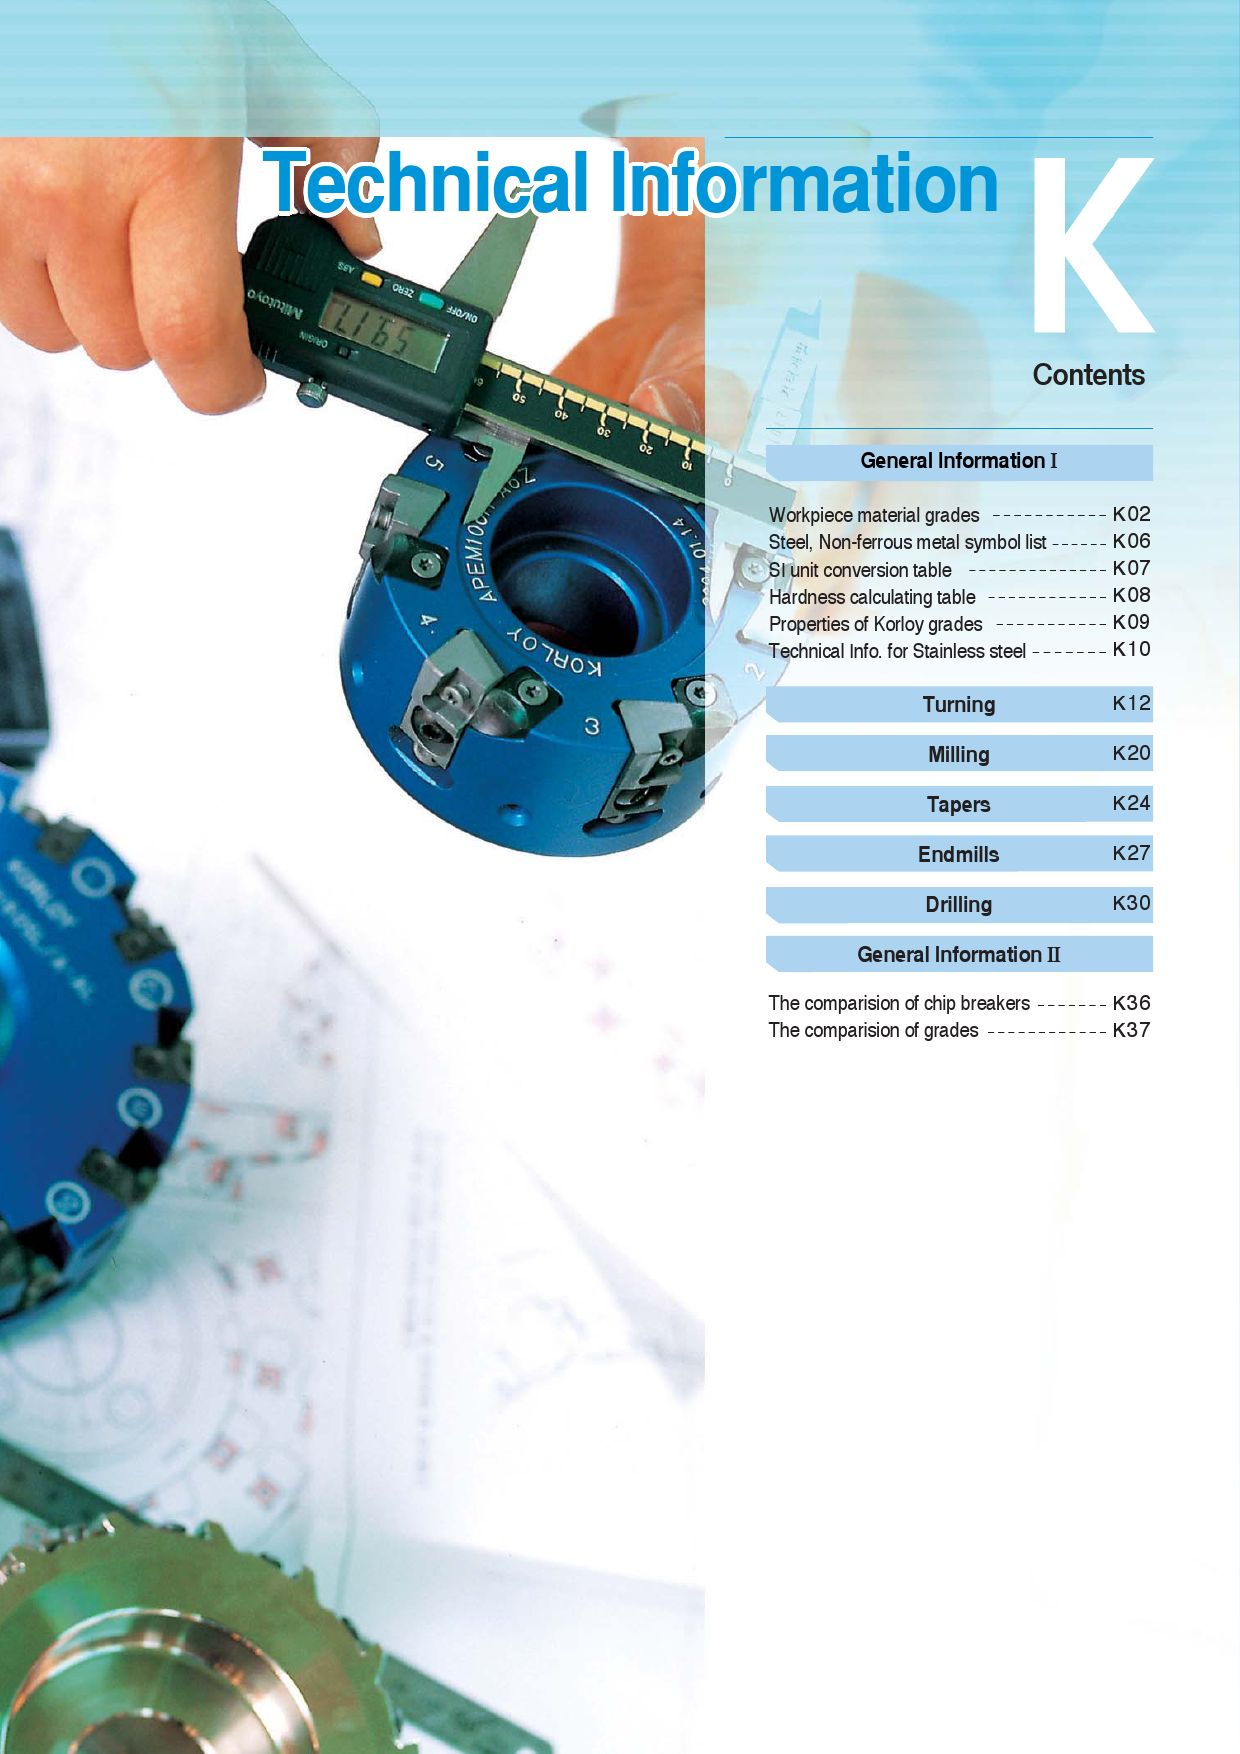 2008 Korloy Metric Catalogue - Technical Information by RBJ